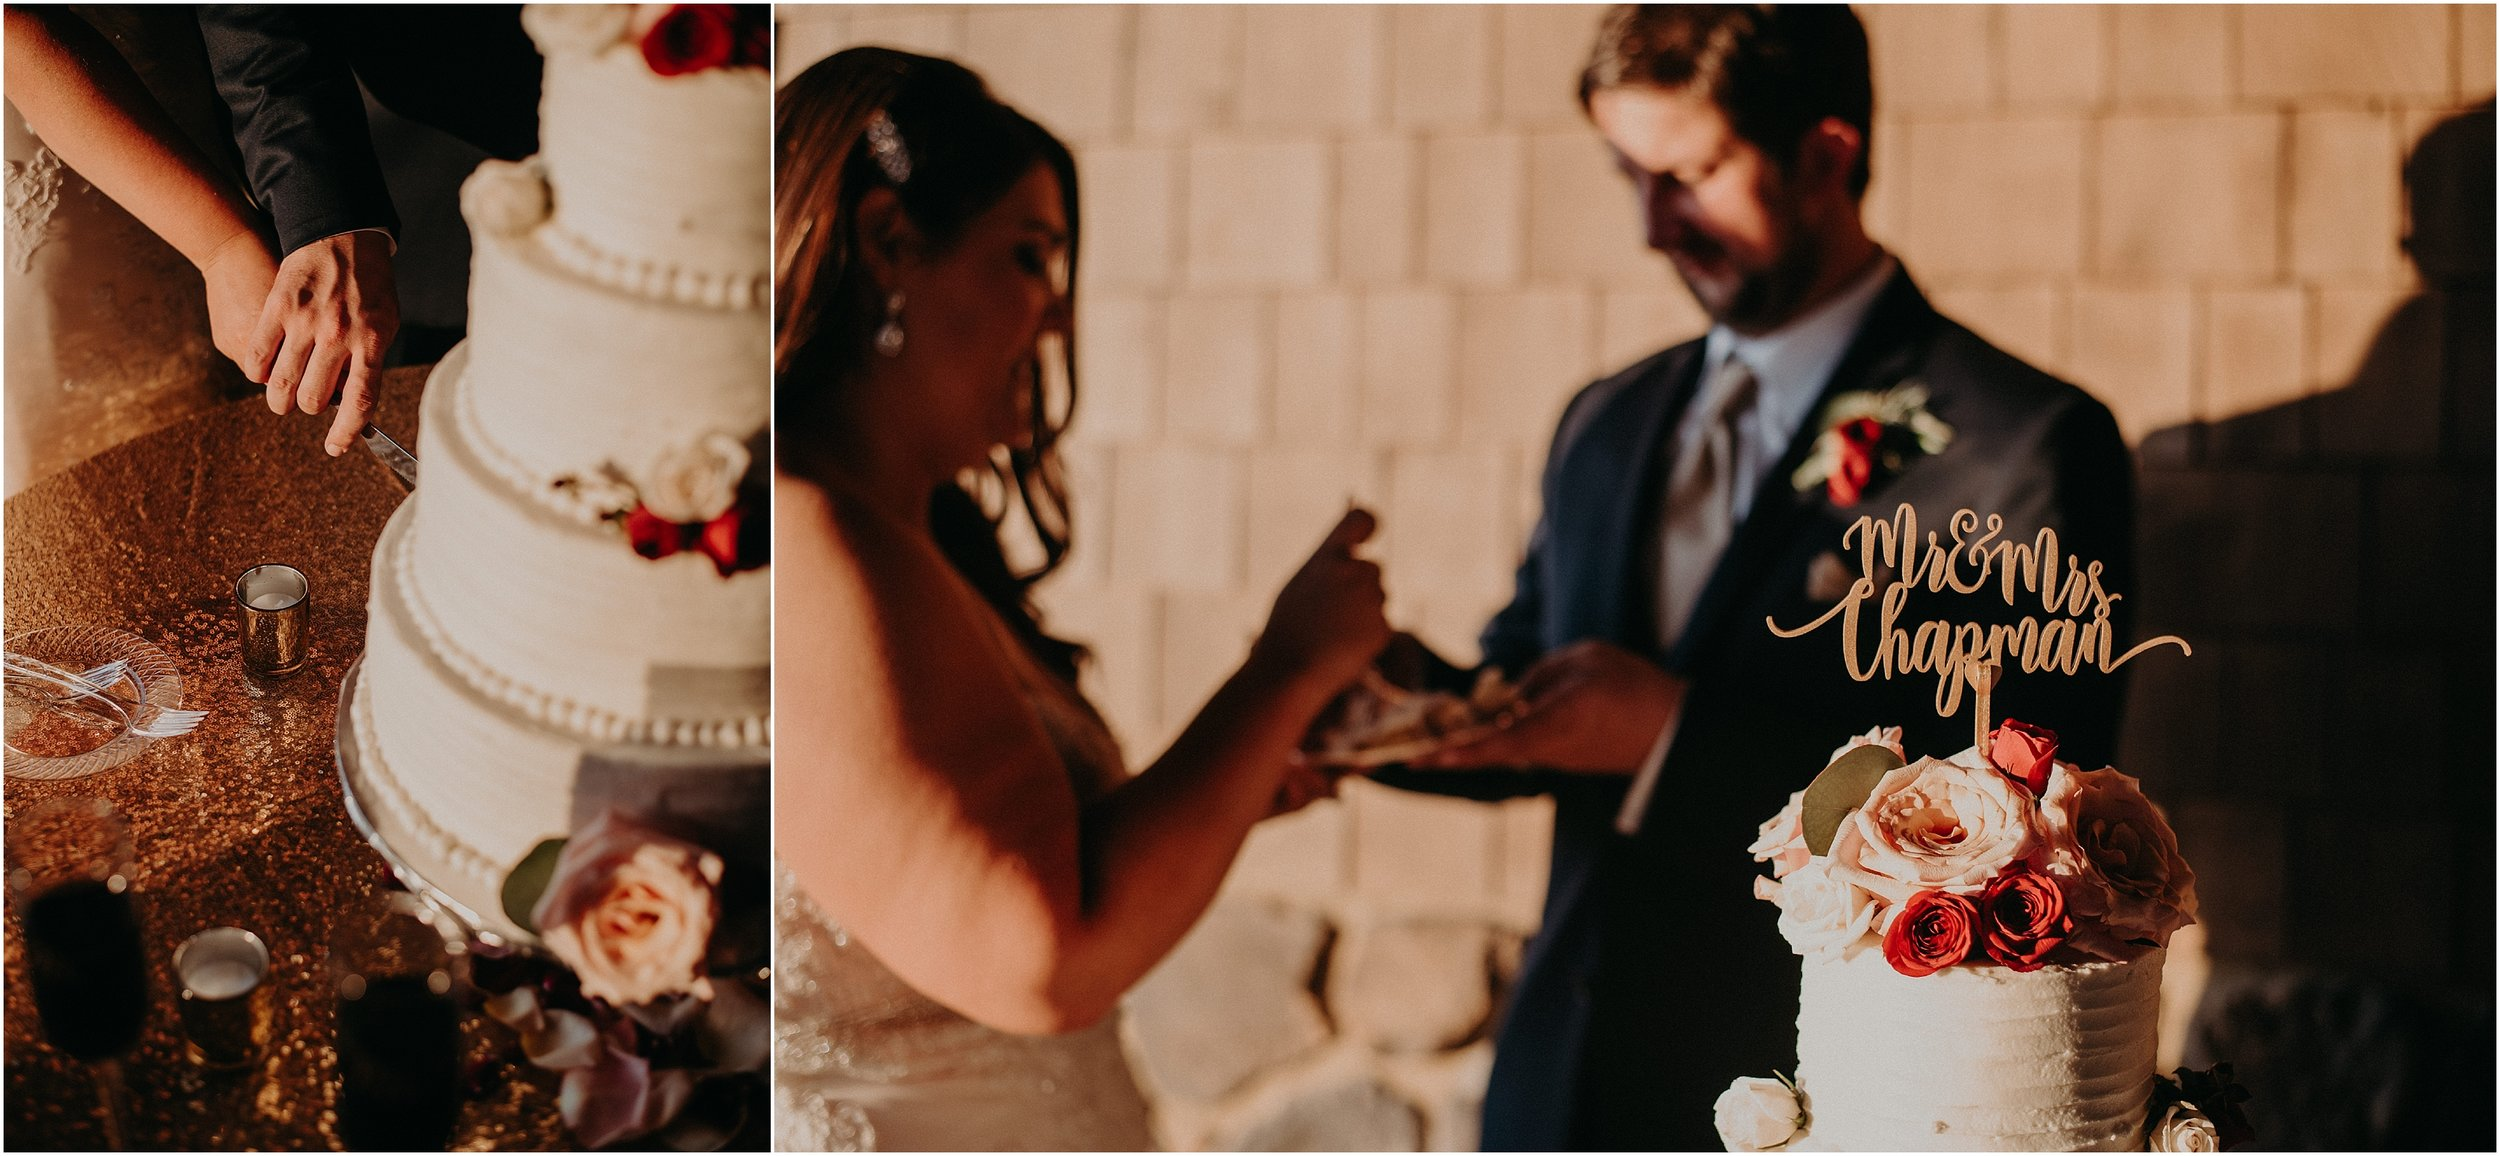 Bride and groom cut their wedding cake together with cake design by Southern Bliss Bakery